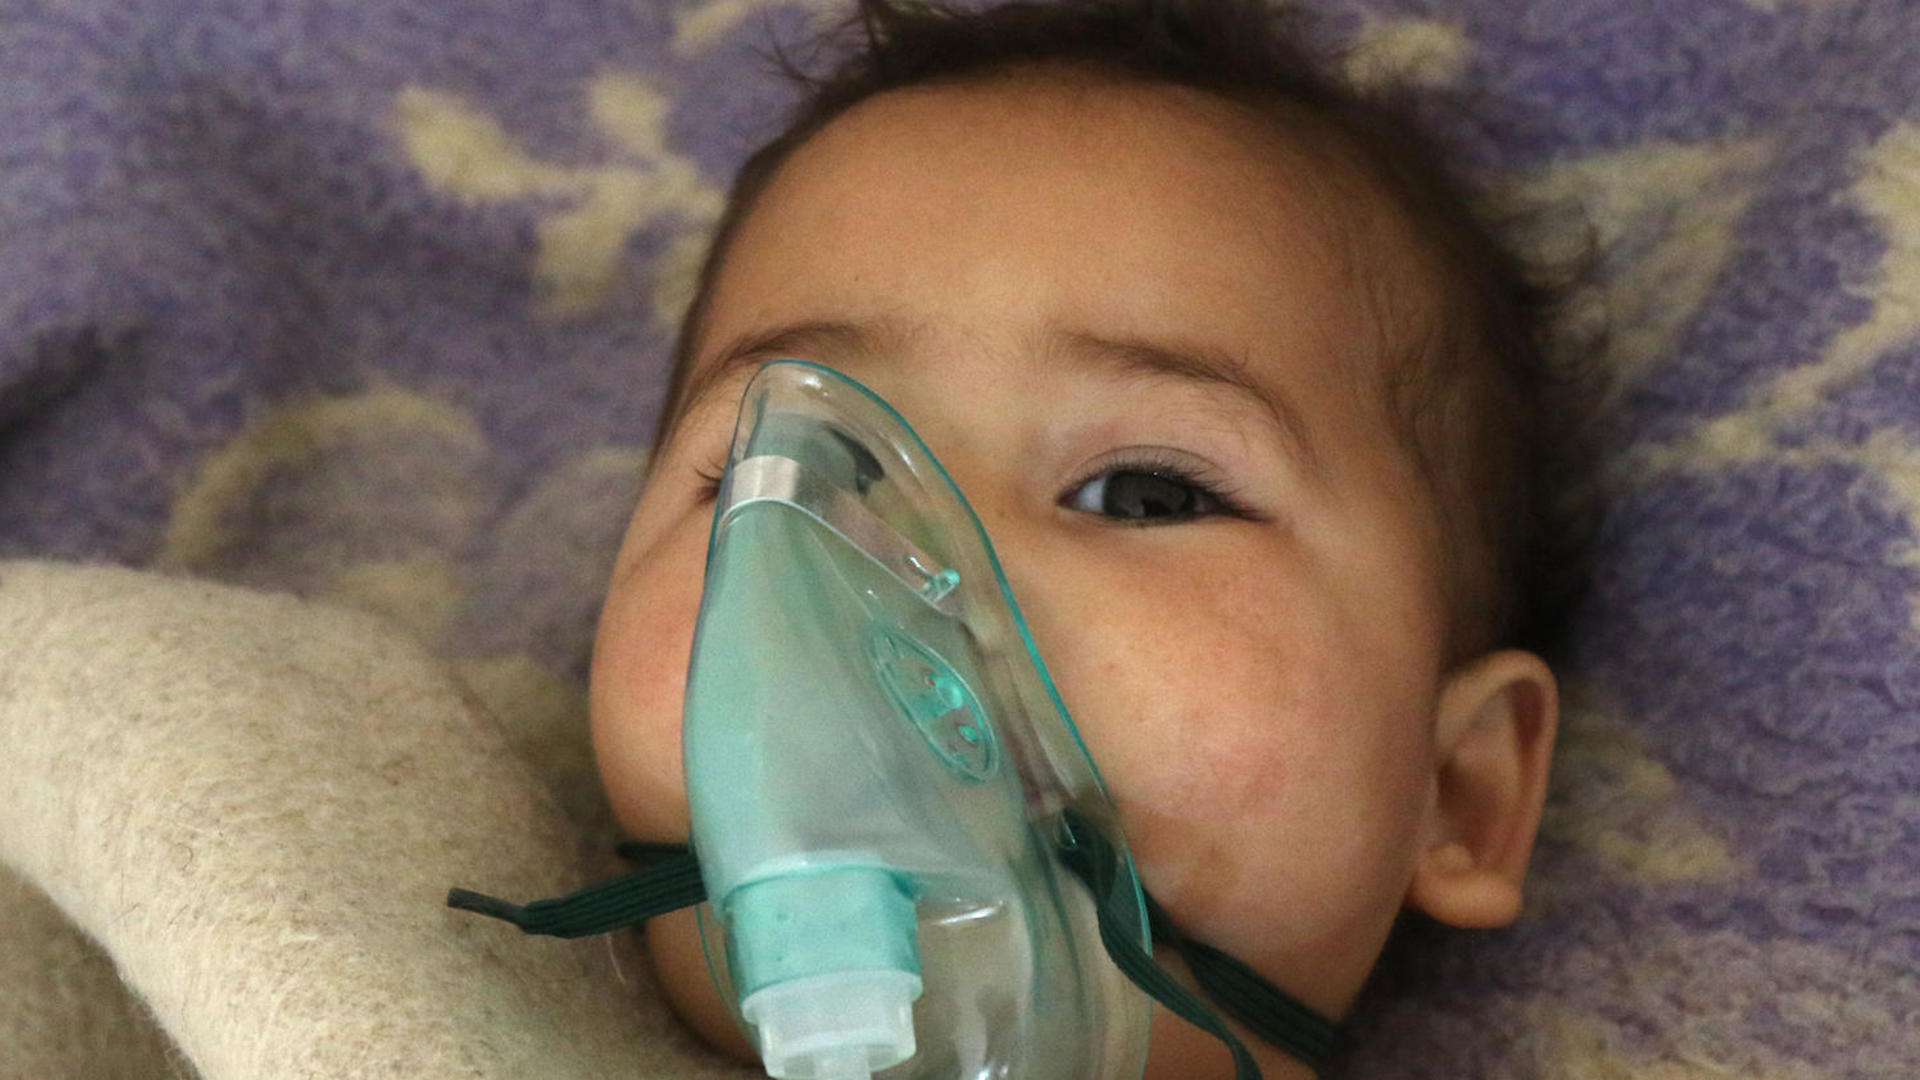 A small child injured in a suspected chemical gas attack in Idlib, Syria receives treatment  with an oxygen mask